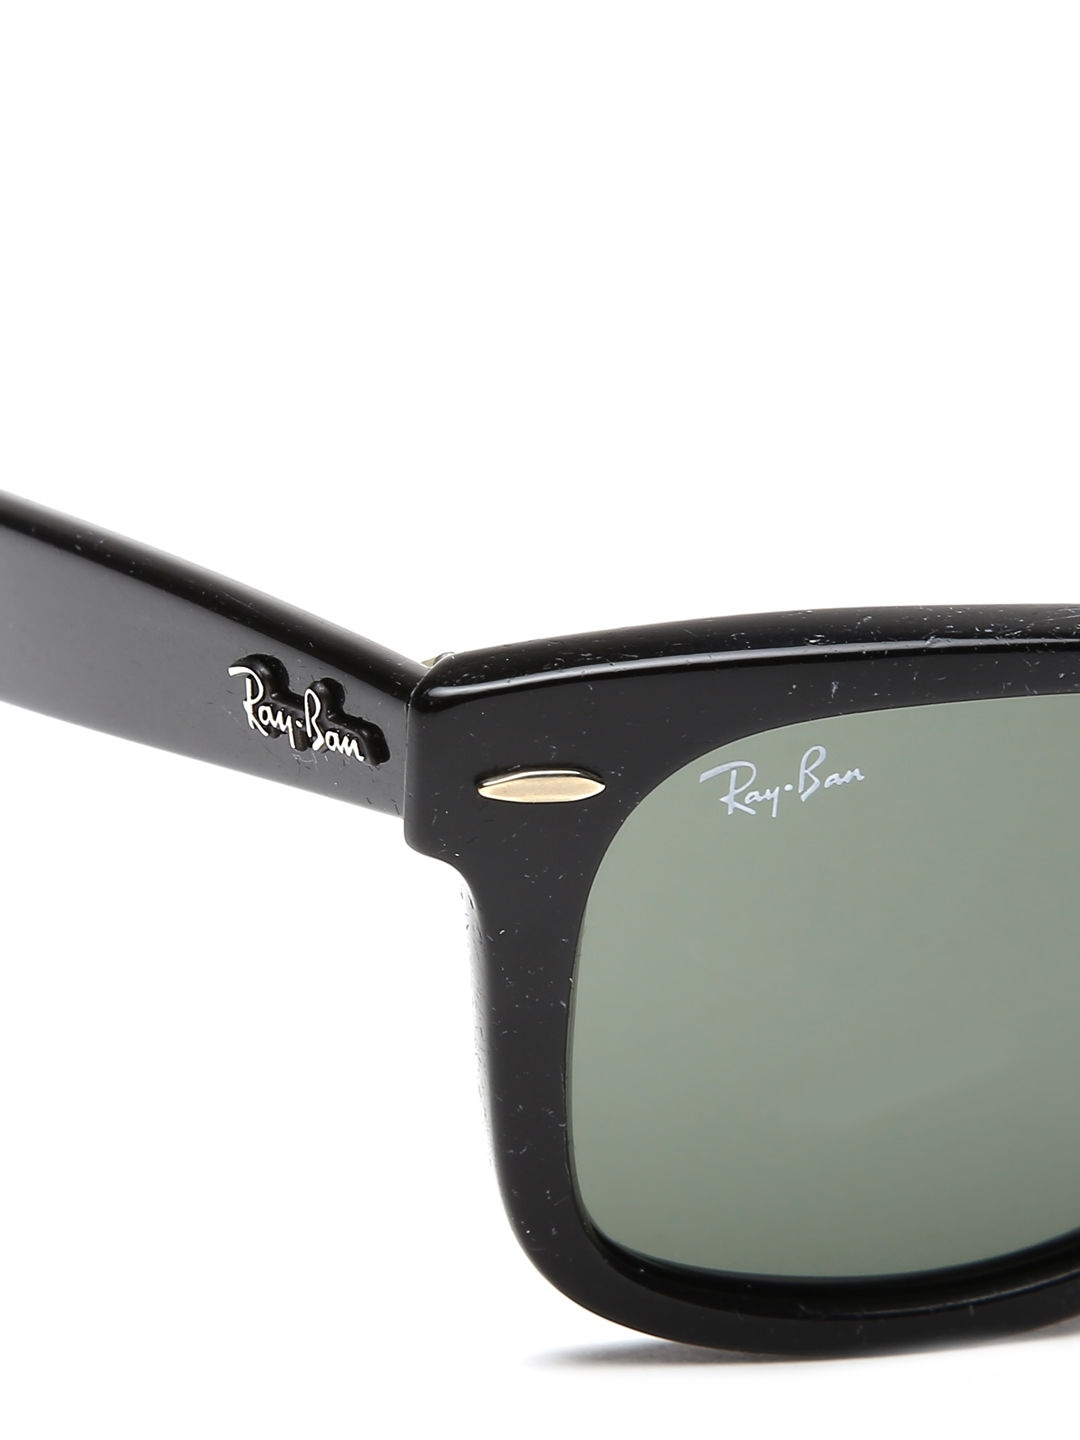 Ray Ban Wayfarer Sunglasses Buy